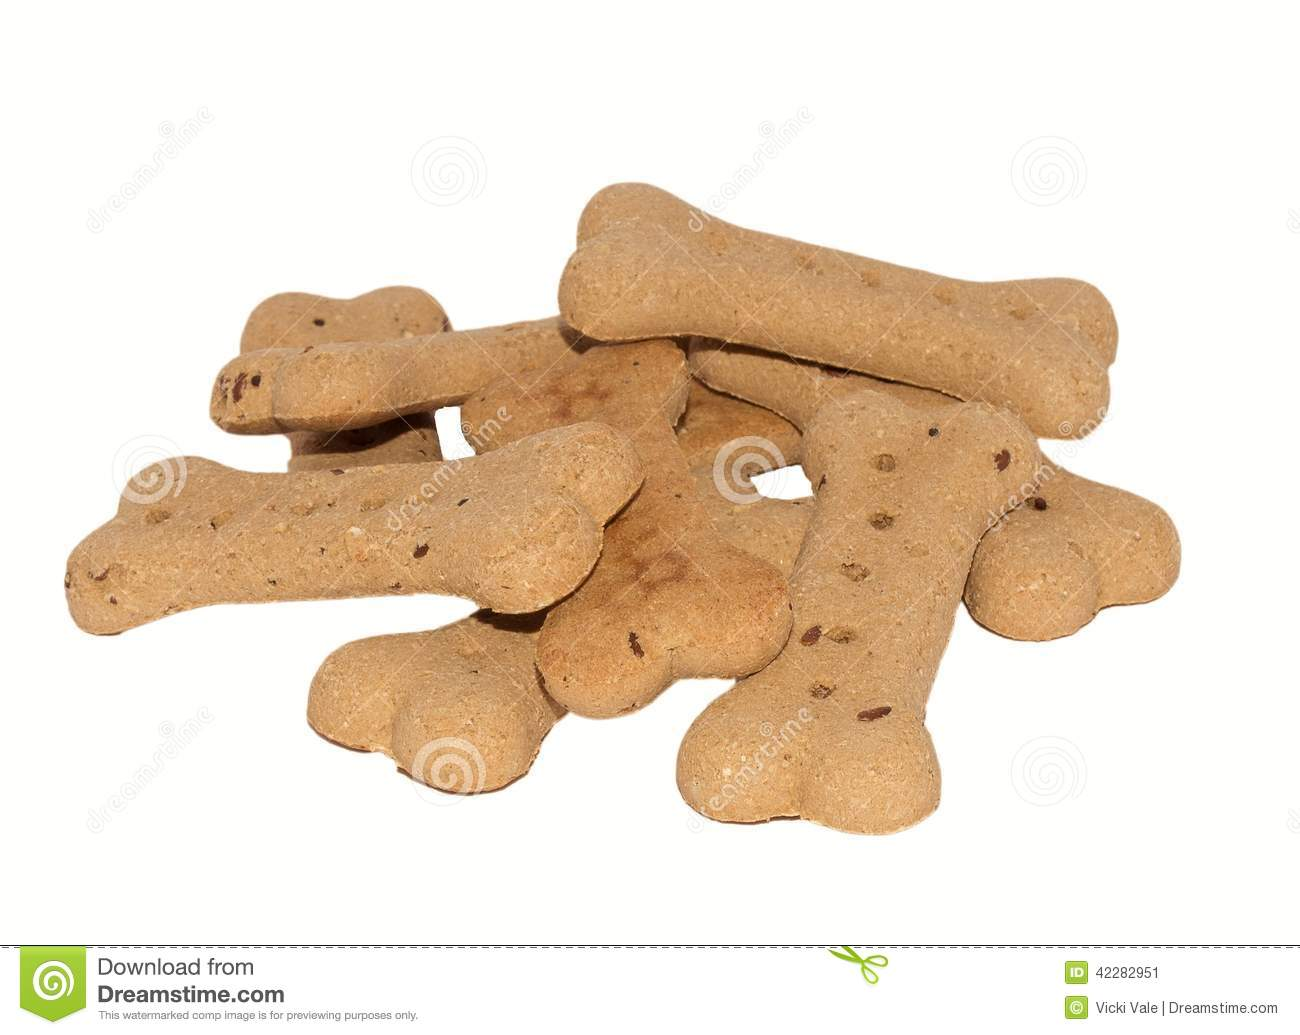 biscuits shape